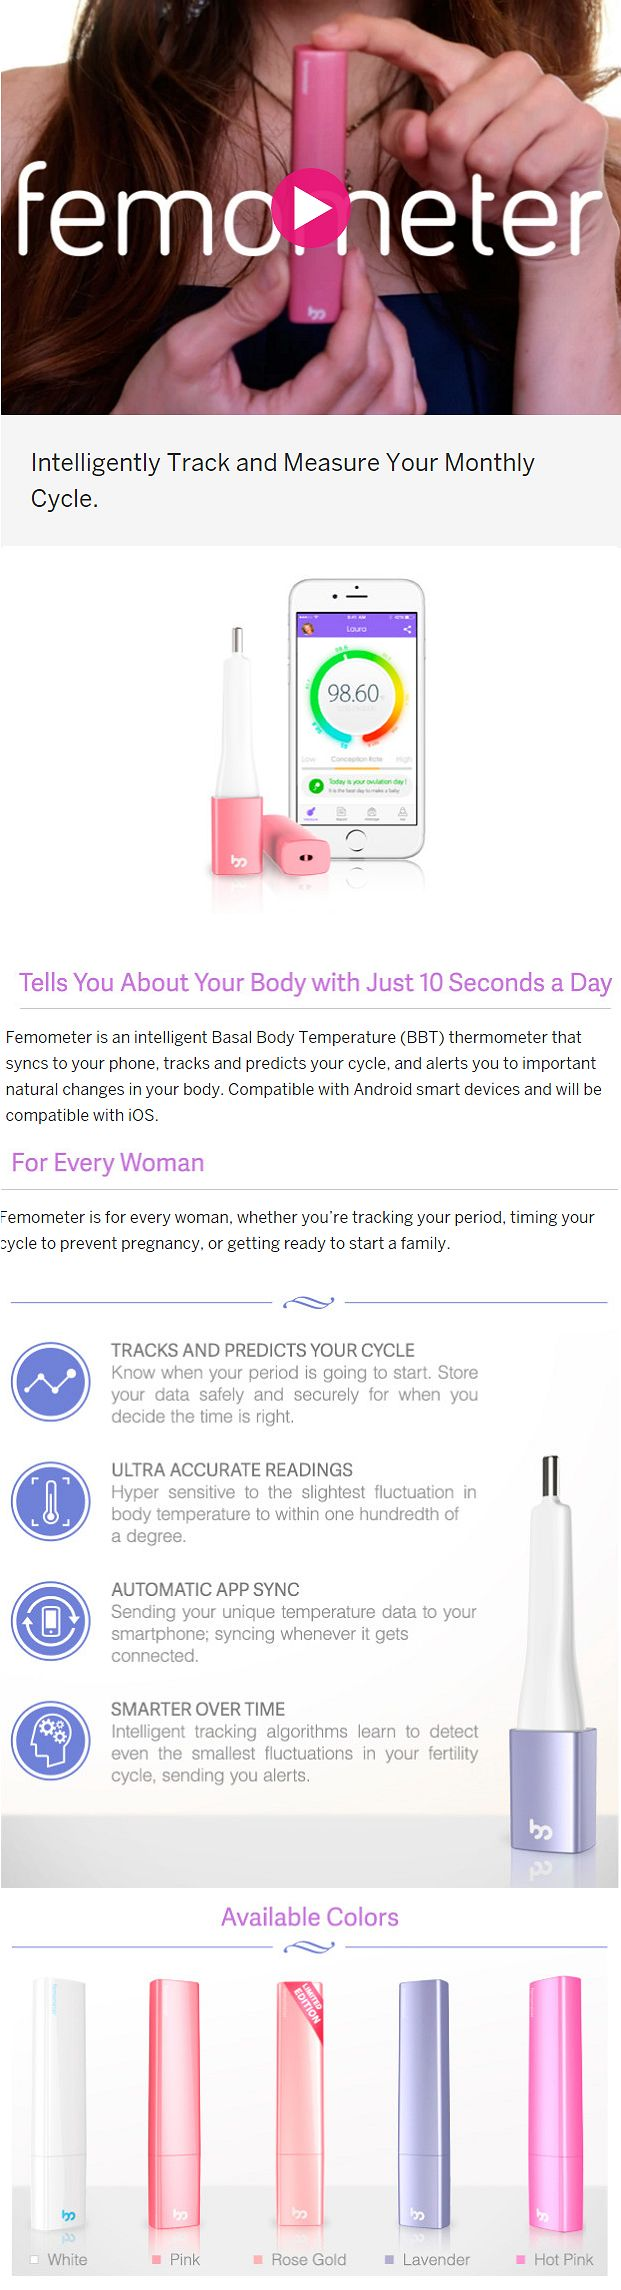 Femometer: Smart Fertility Tracker. Intelligently Track and Measure Your Monthly Cycle. Femometer is an intelligent Basal Body Temperature (BBT) thermometer that syncs to your phone, tracks and predicts your cycle, and alerts you to important natural changes in your body. Compatible with Android smart devices and will be compatible with iOS. Femometer is for every woman, whether you're tracking your period, timing your cycle to prevent pregnancy, or getting ready to start a family.